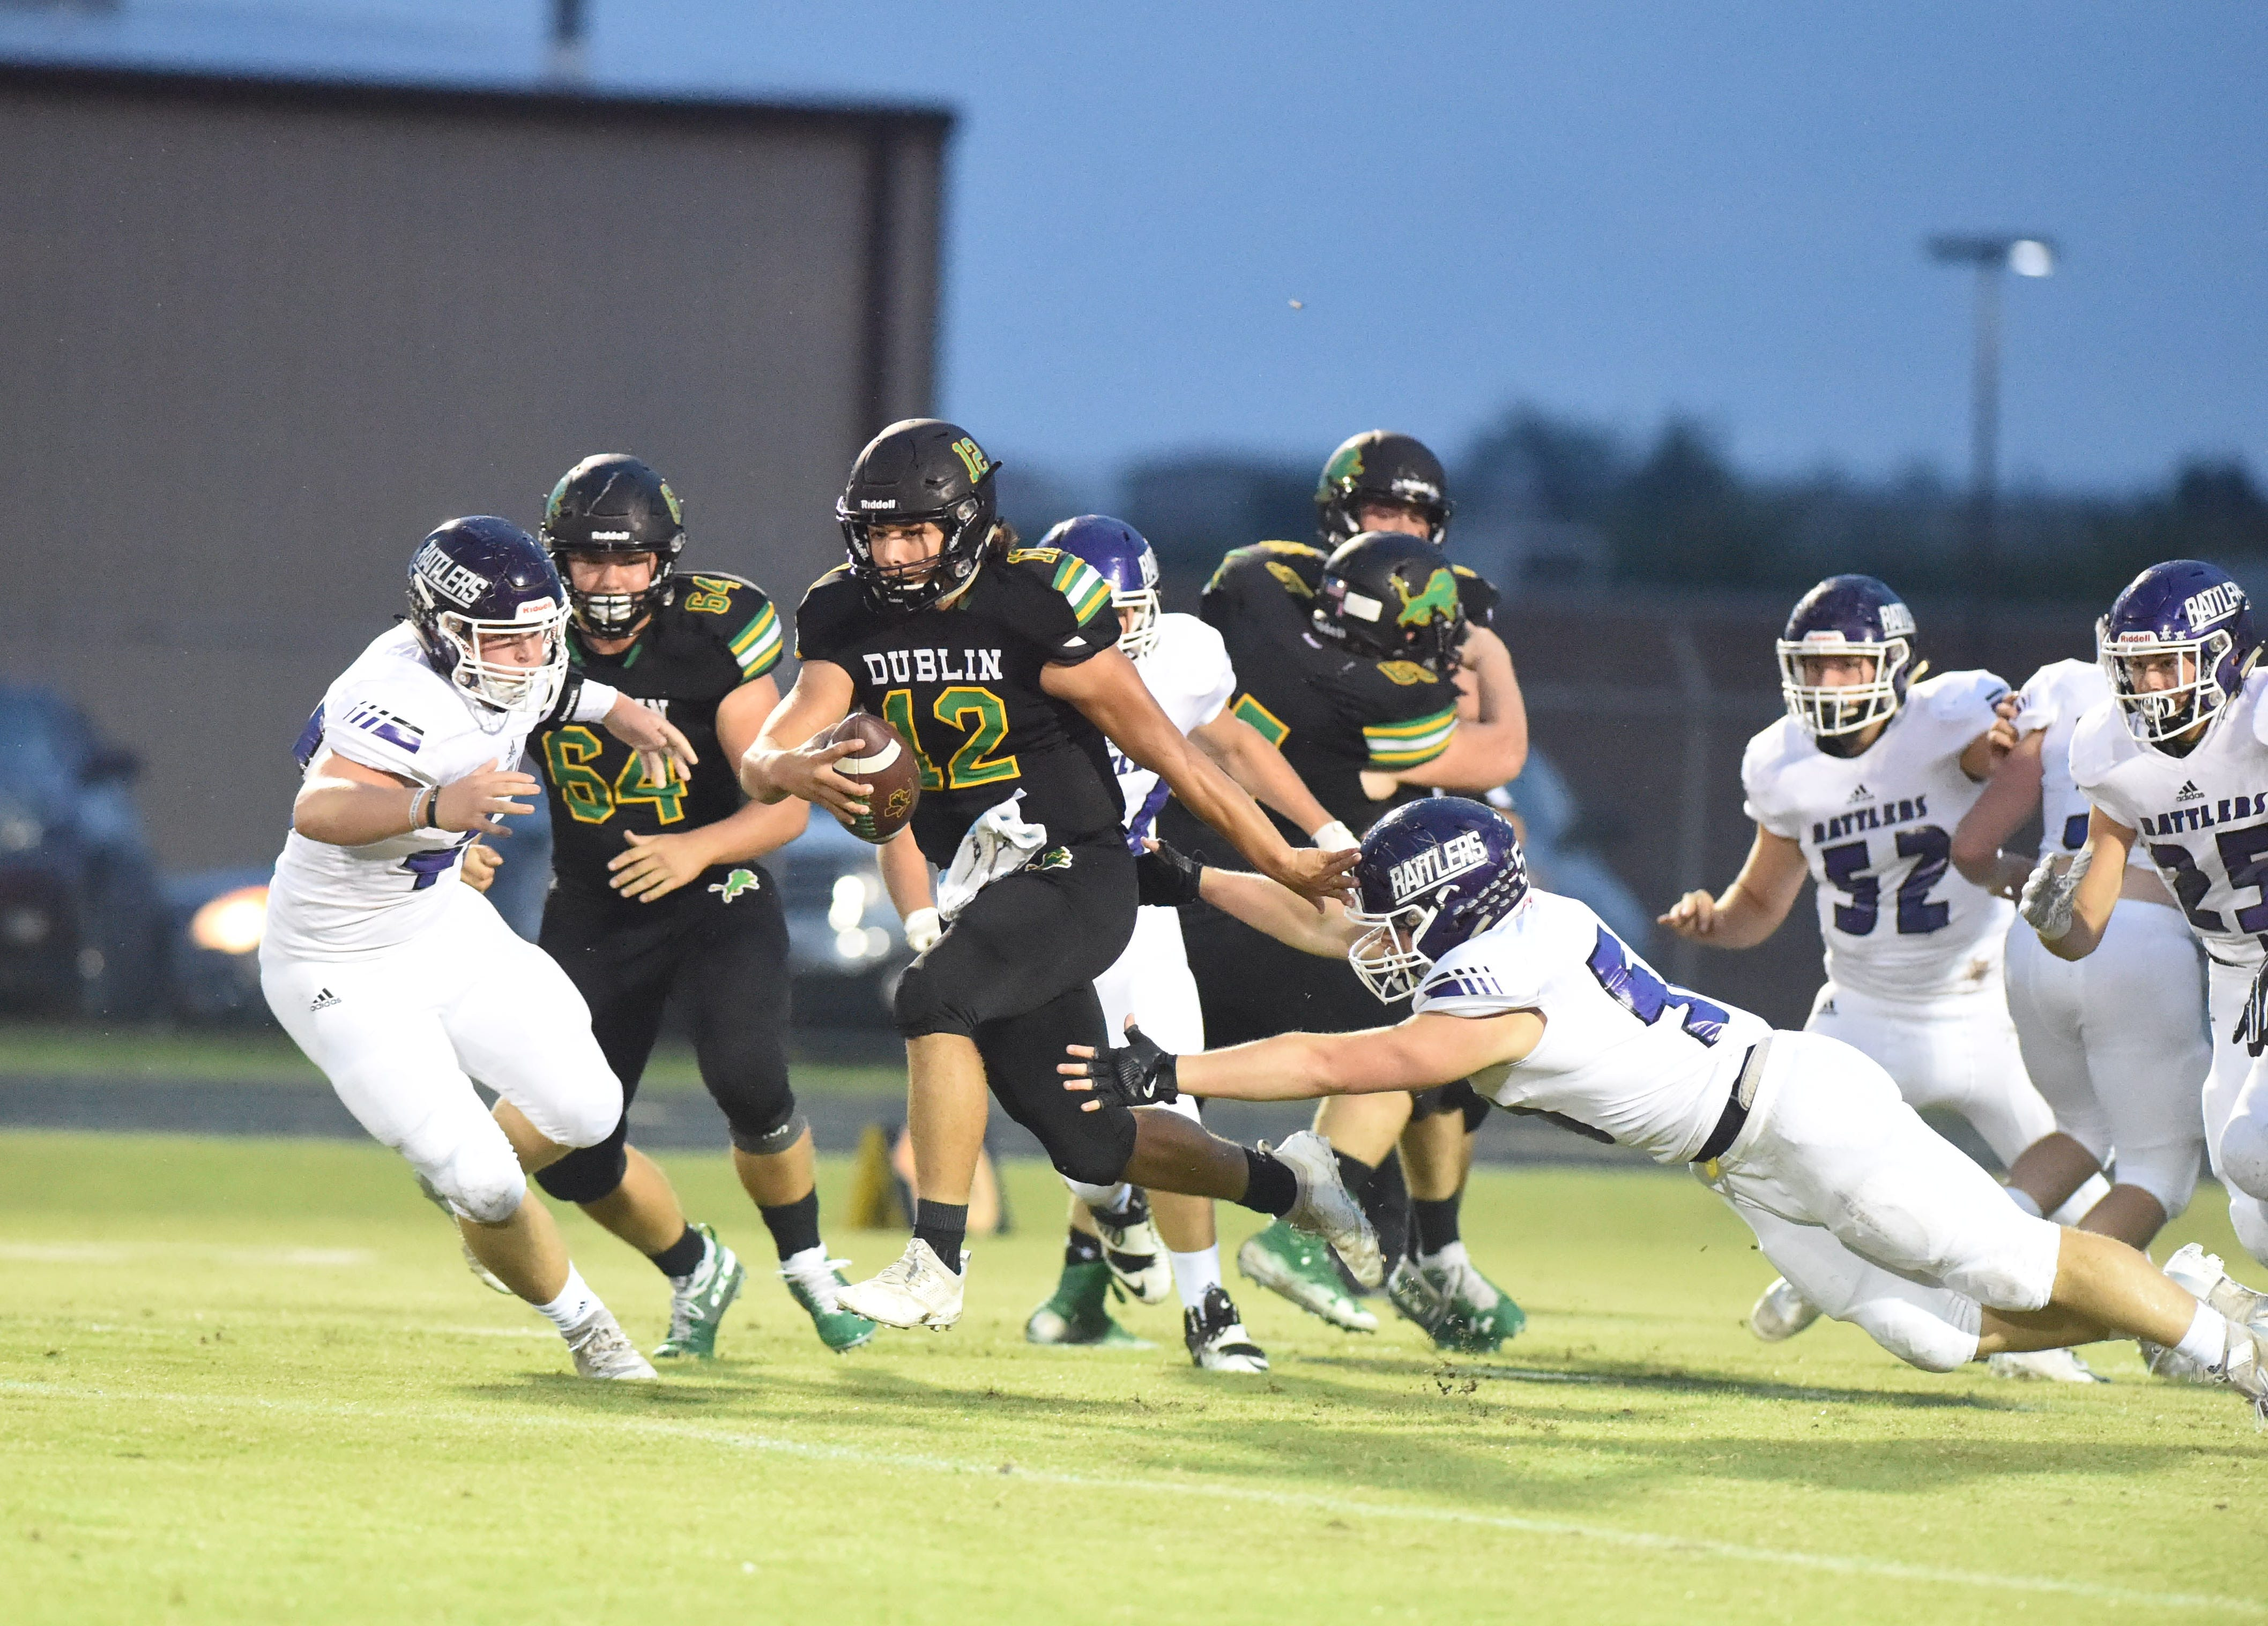 Dublin quarterback Cy Wing (12) sheds a tackle on the way to a 46-yard run in the first quarter against Tolar on Oct. 12, 2018 at Memorial Stadium.